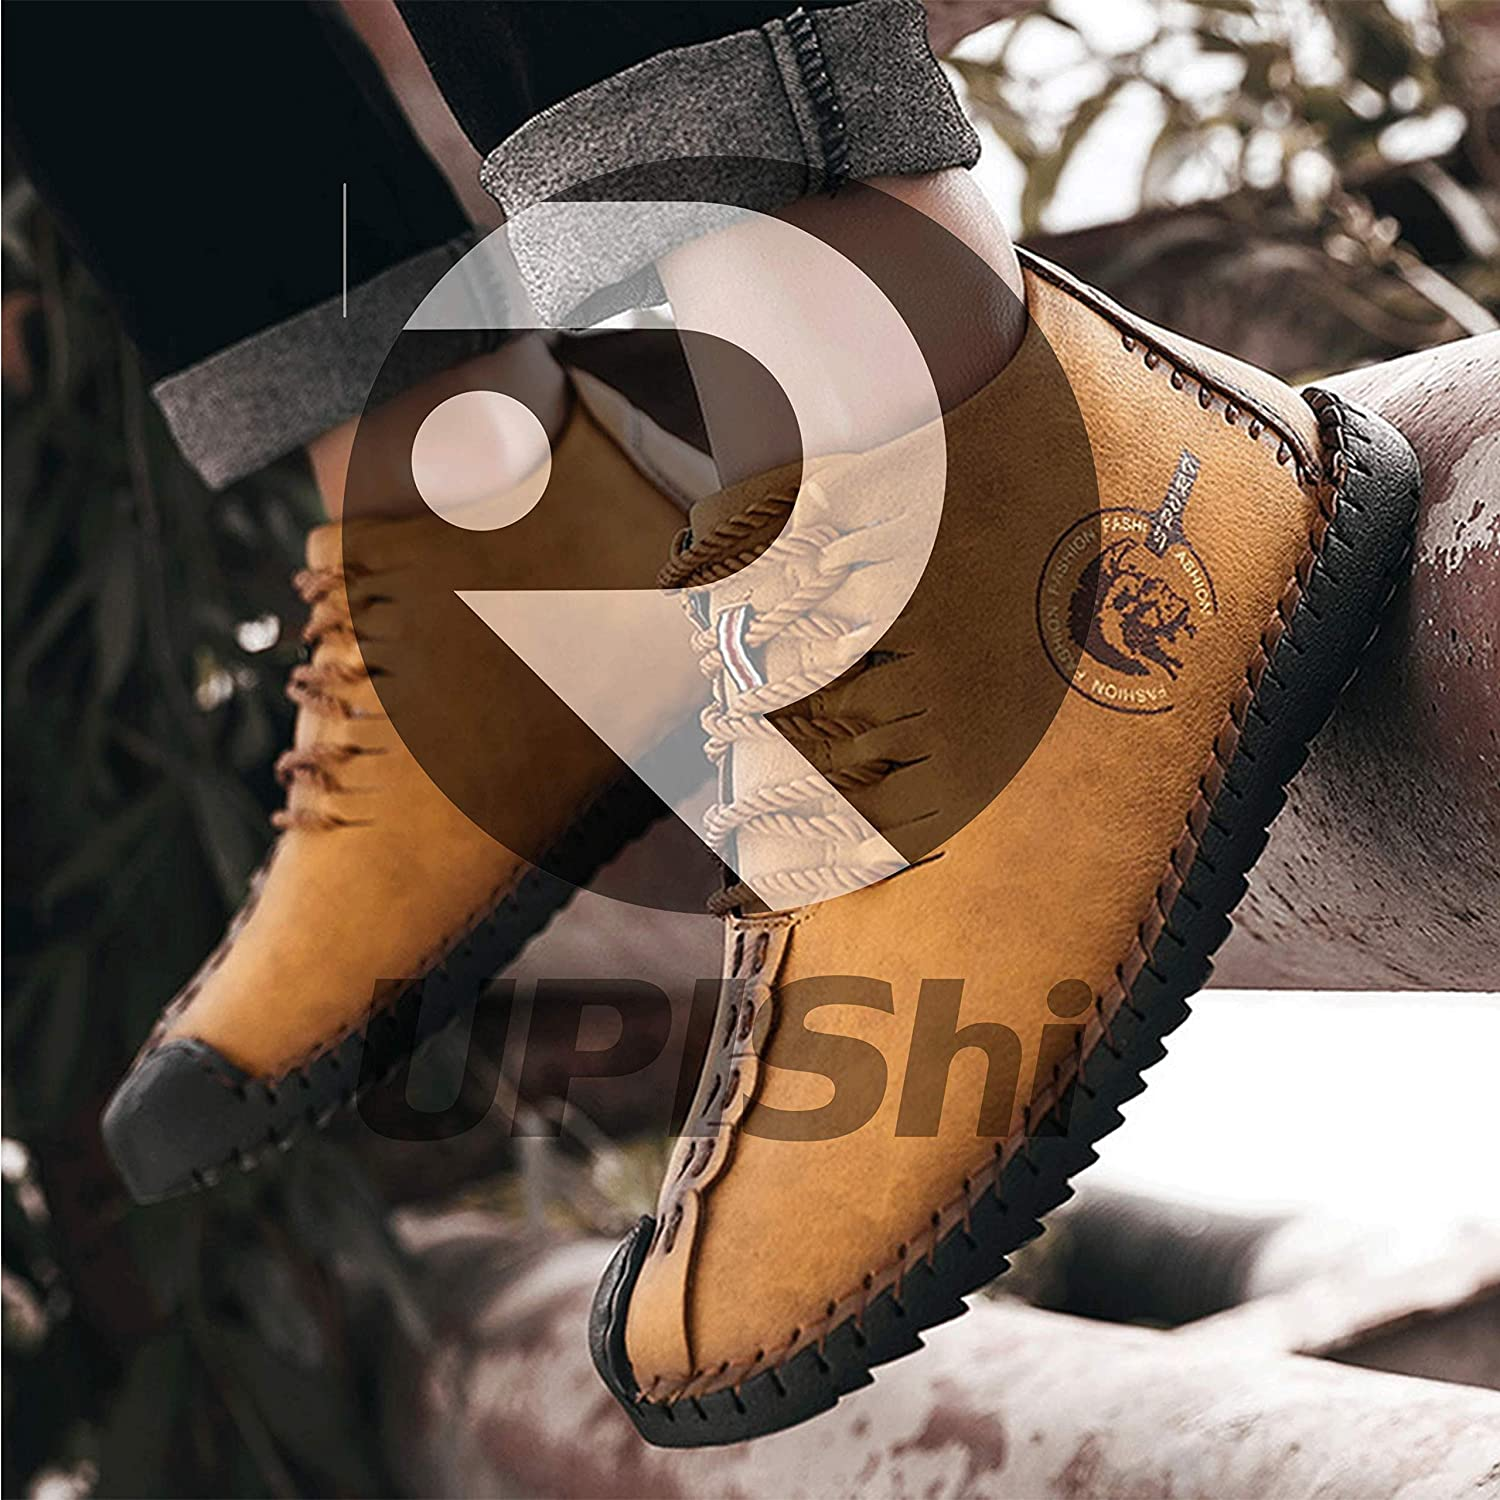 UPIShi Mens Suede Fur Lining Winter Lace-up Oxford Leather Handmade Driving Ankle Boots Chukka Casual Shoes